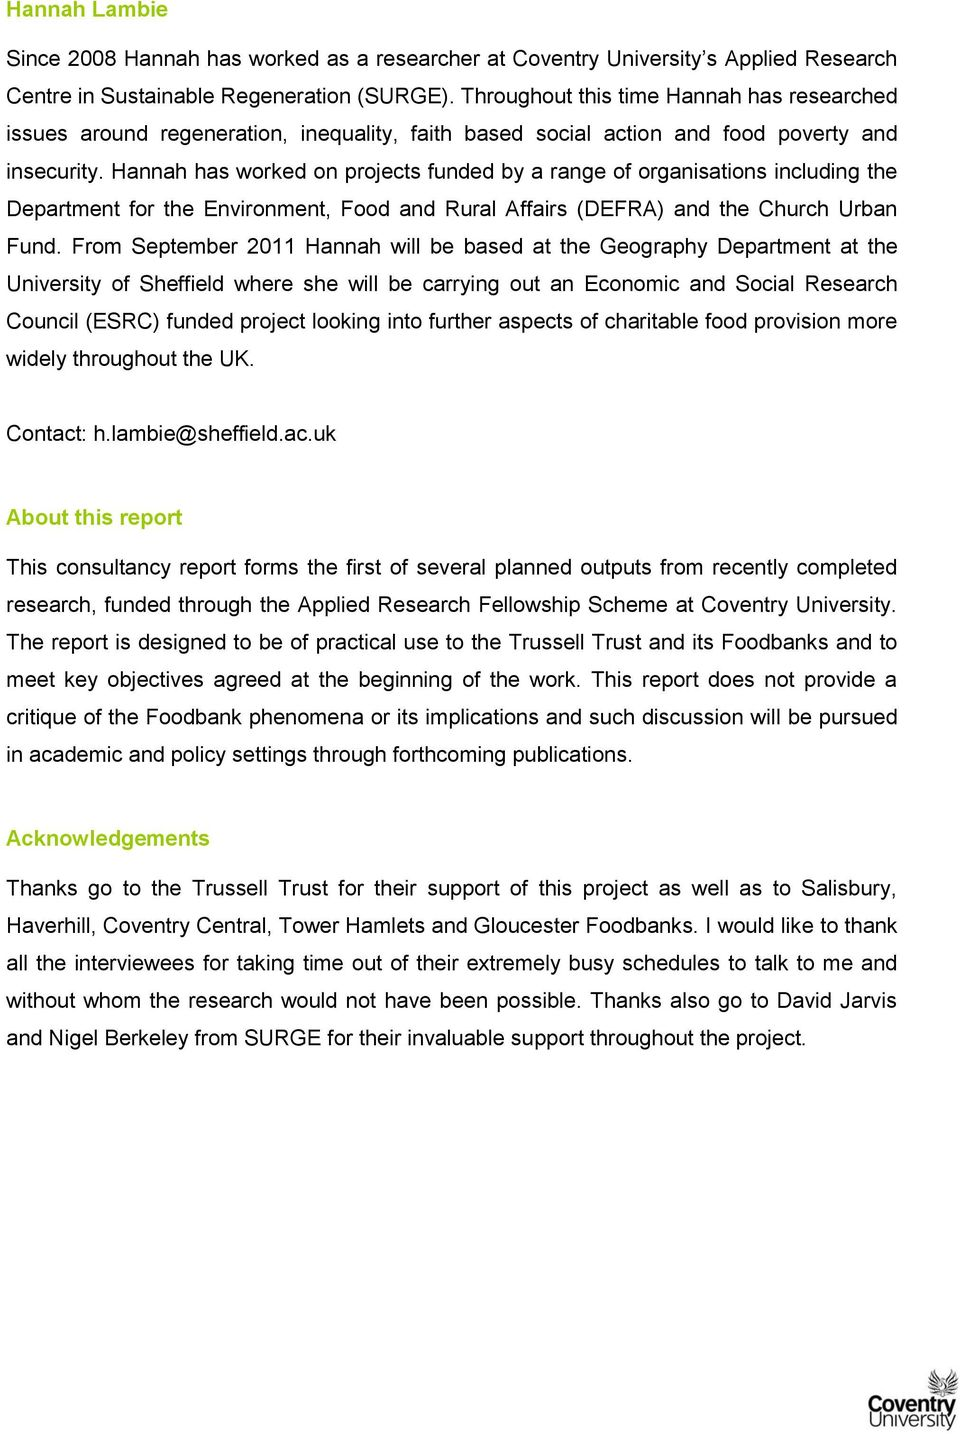 The Trussell Trust Foodbank Network Exploring The Growth Of